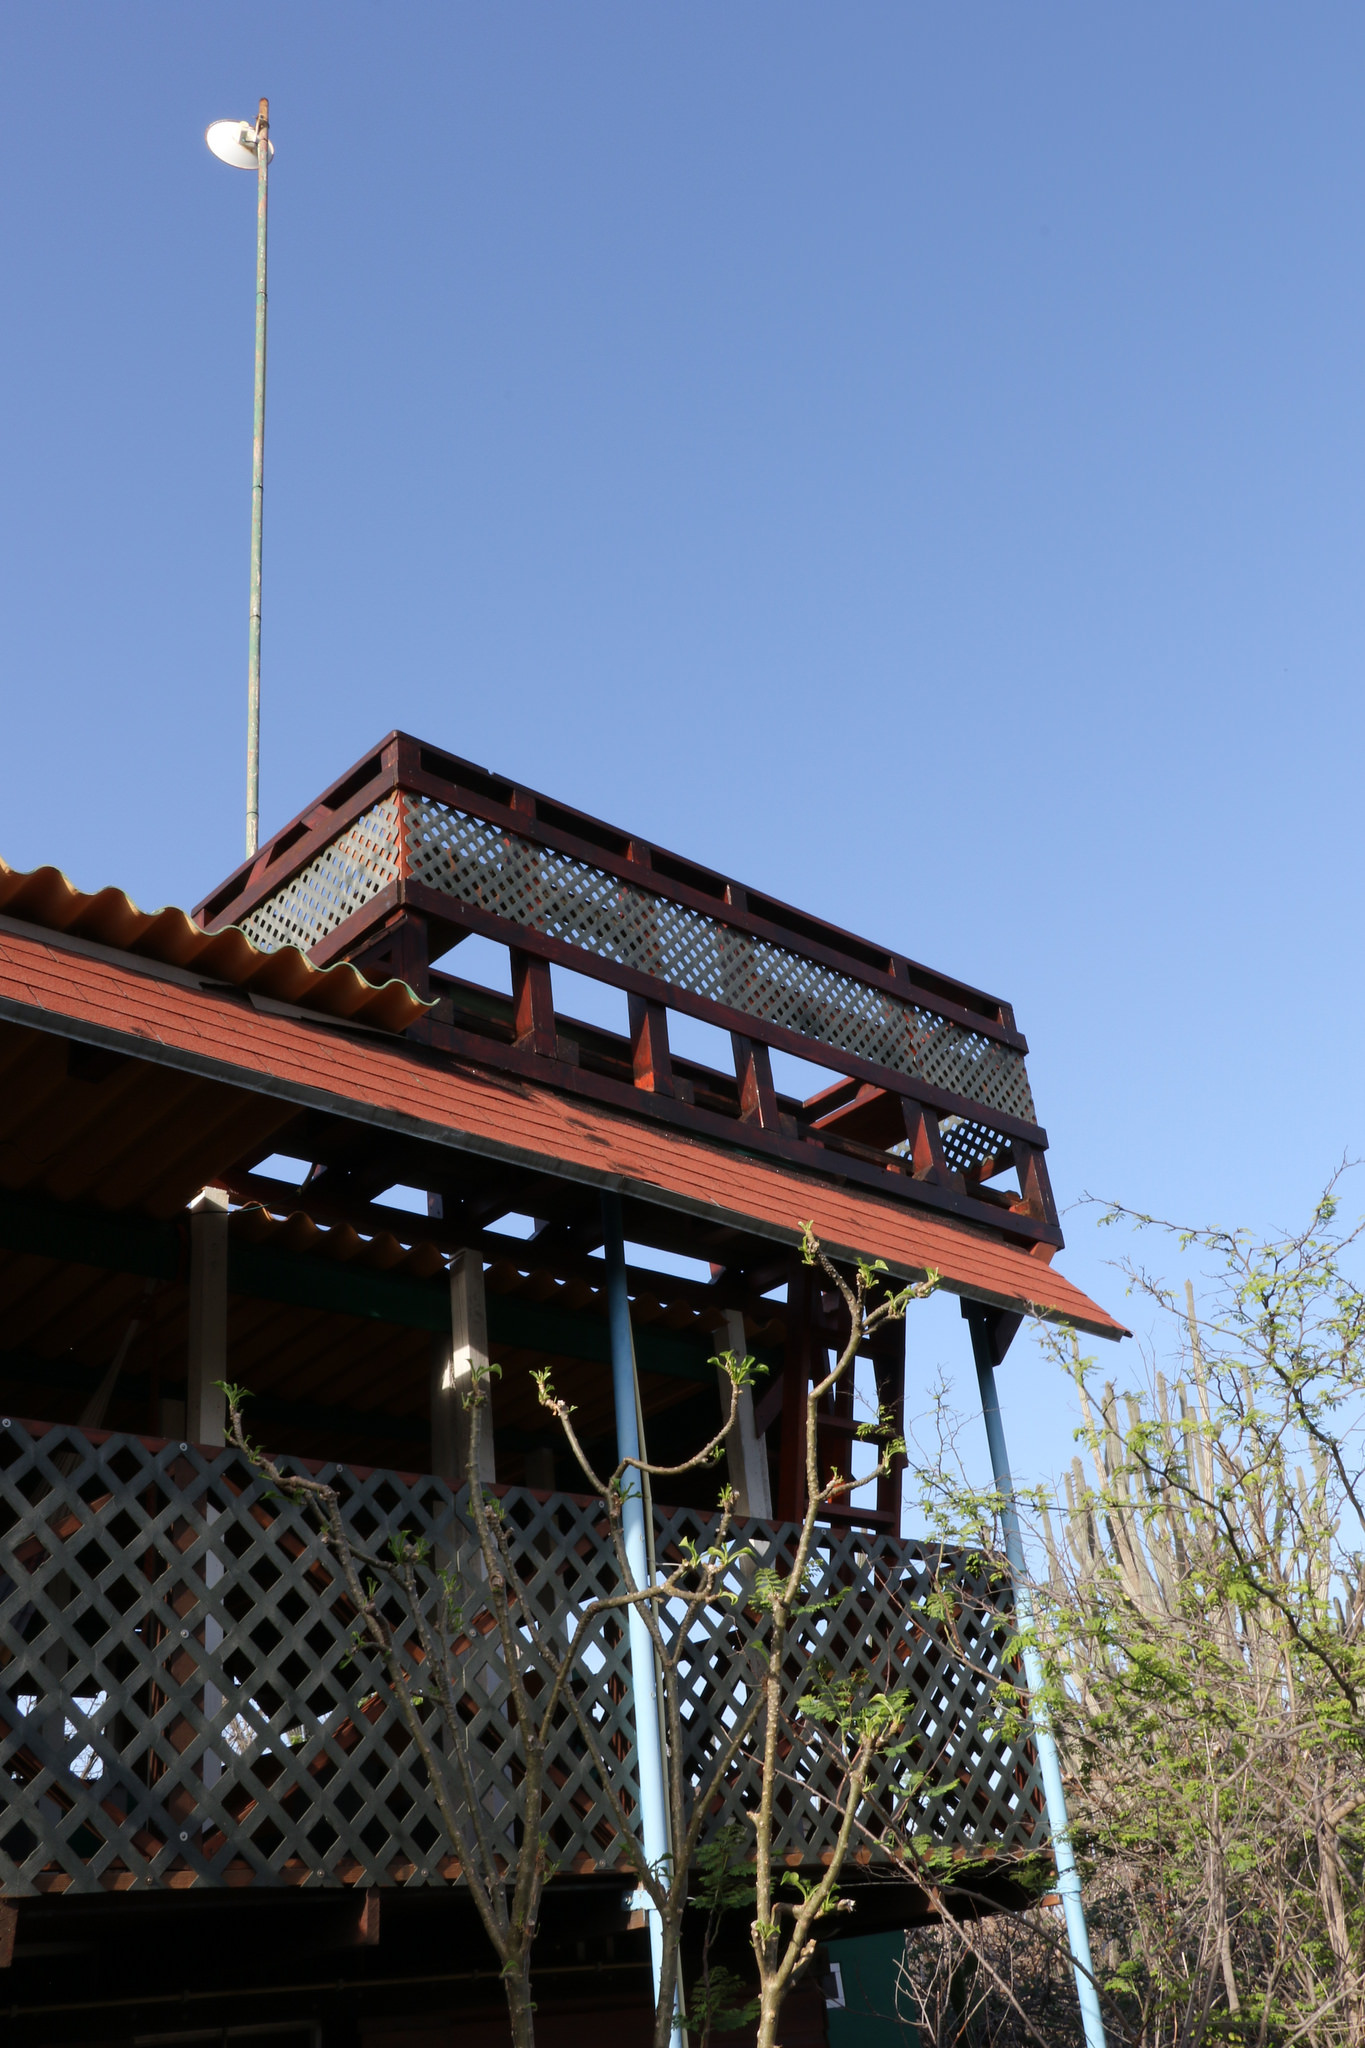 A View of the Ecolodge